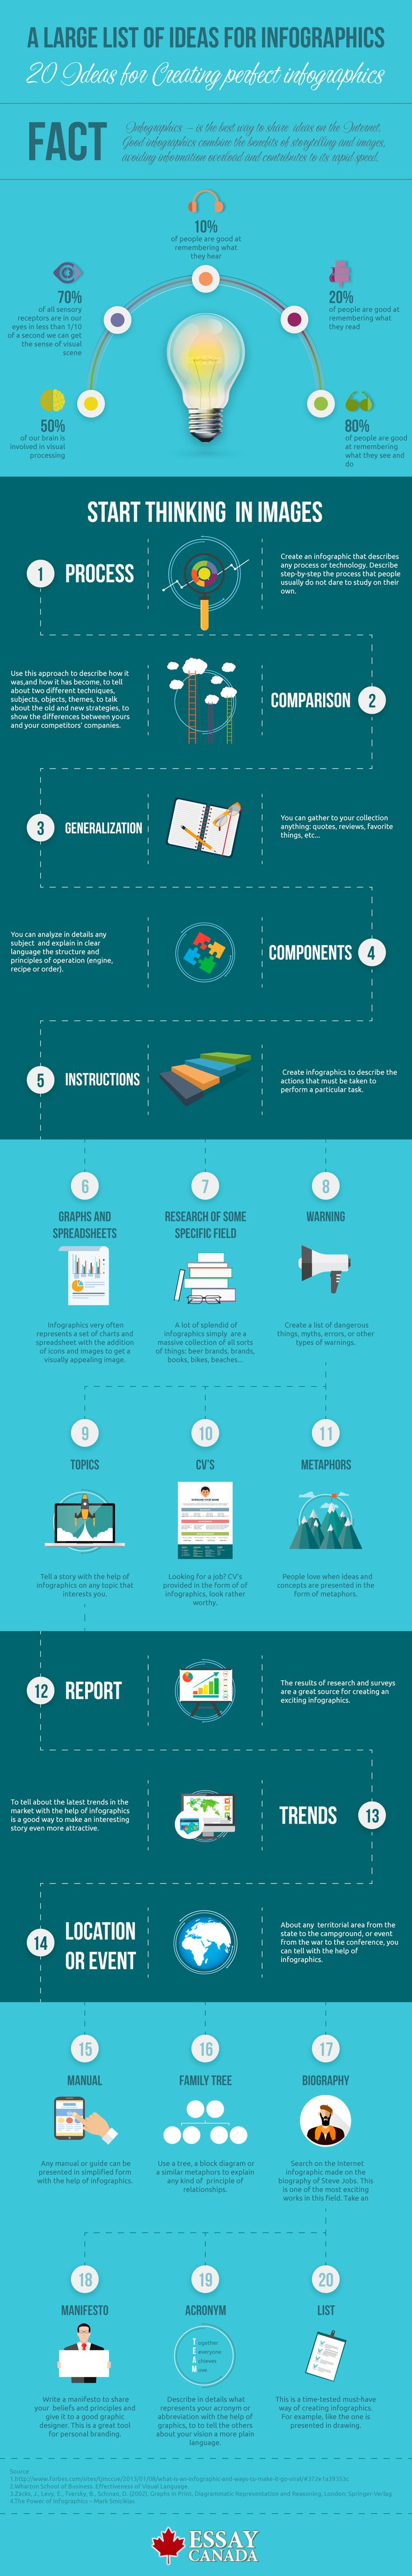 20 Ideas for Creating Perfect Infographics Infographic